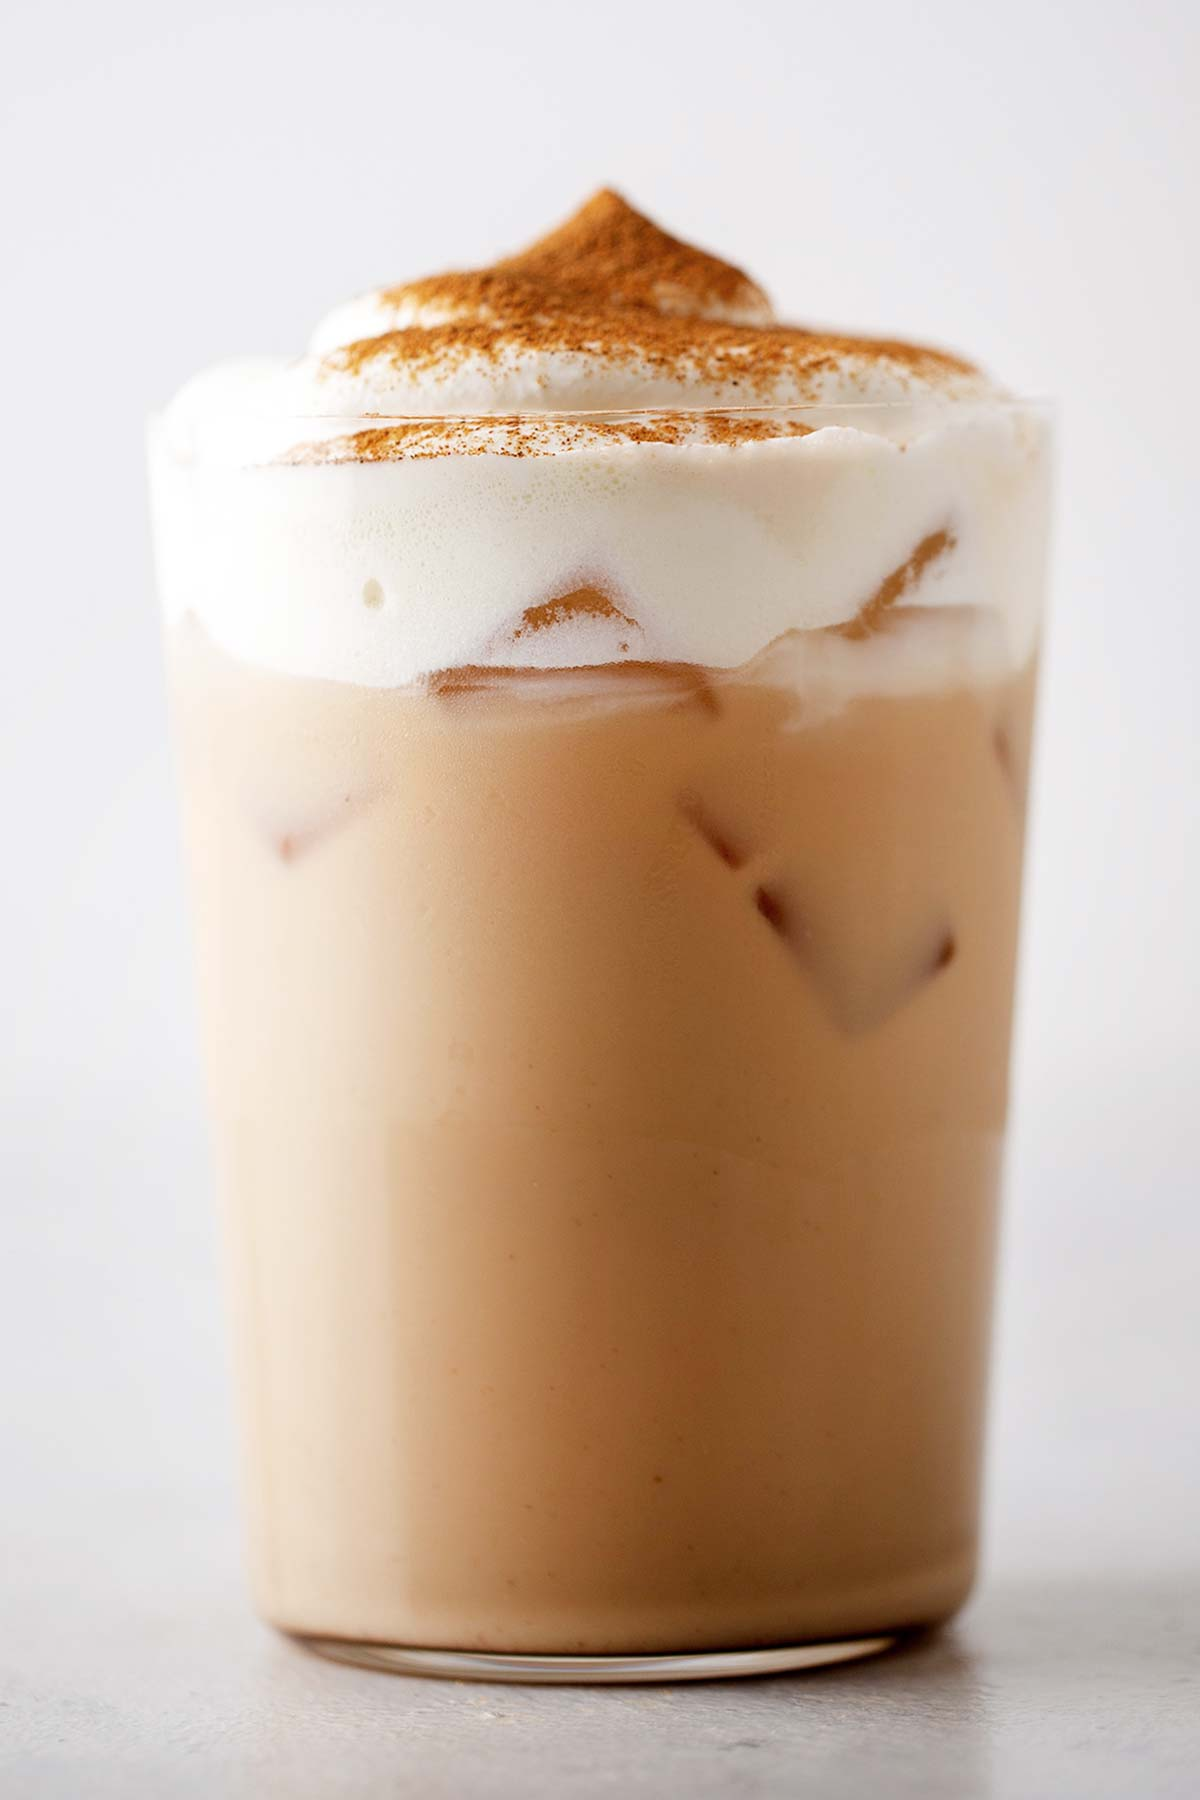 Iced Pumpkin Spice Latte drink in a cup with whipped cream.